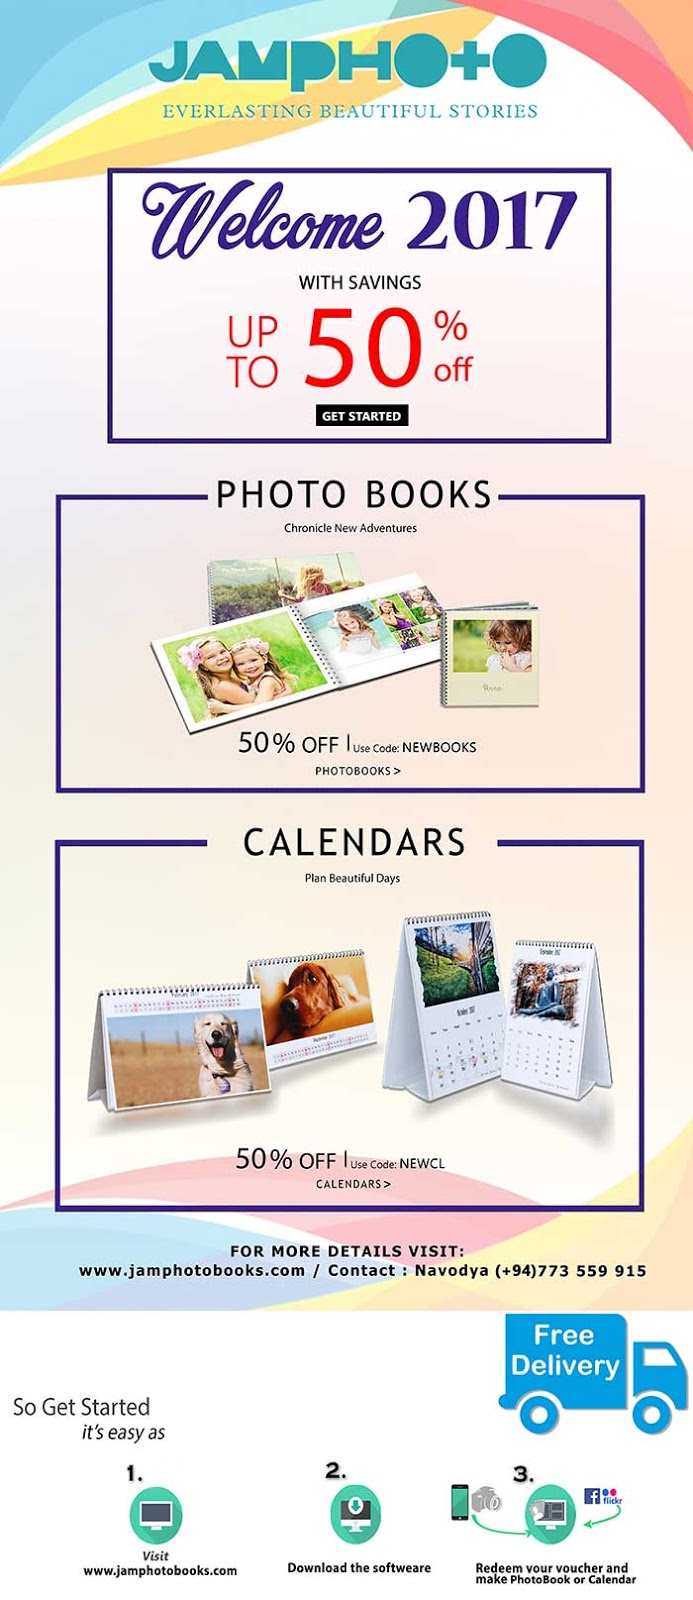 Welcome to 2017 with Savings on Photo Books and Calendars - Online.